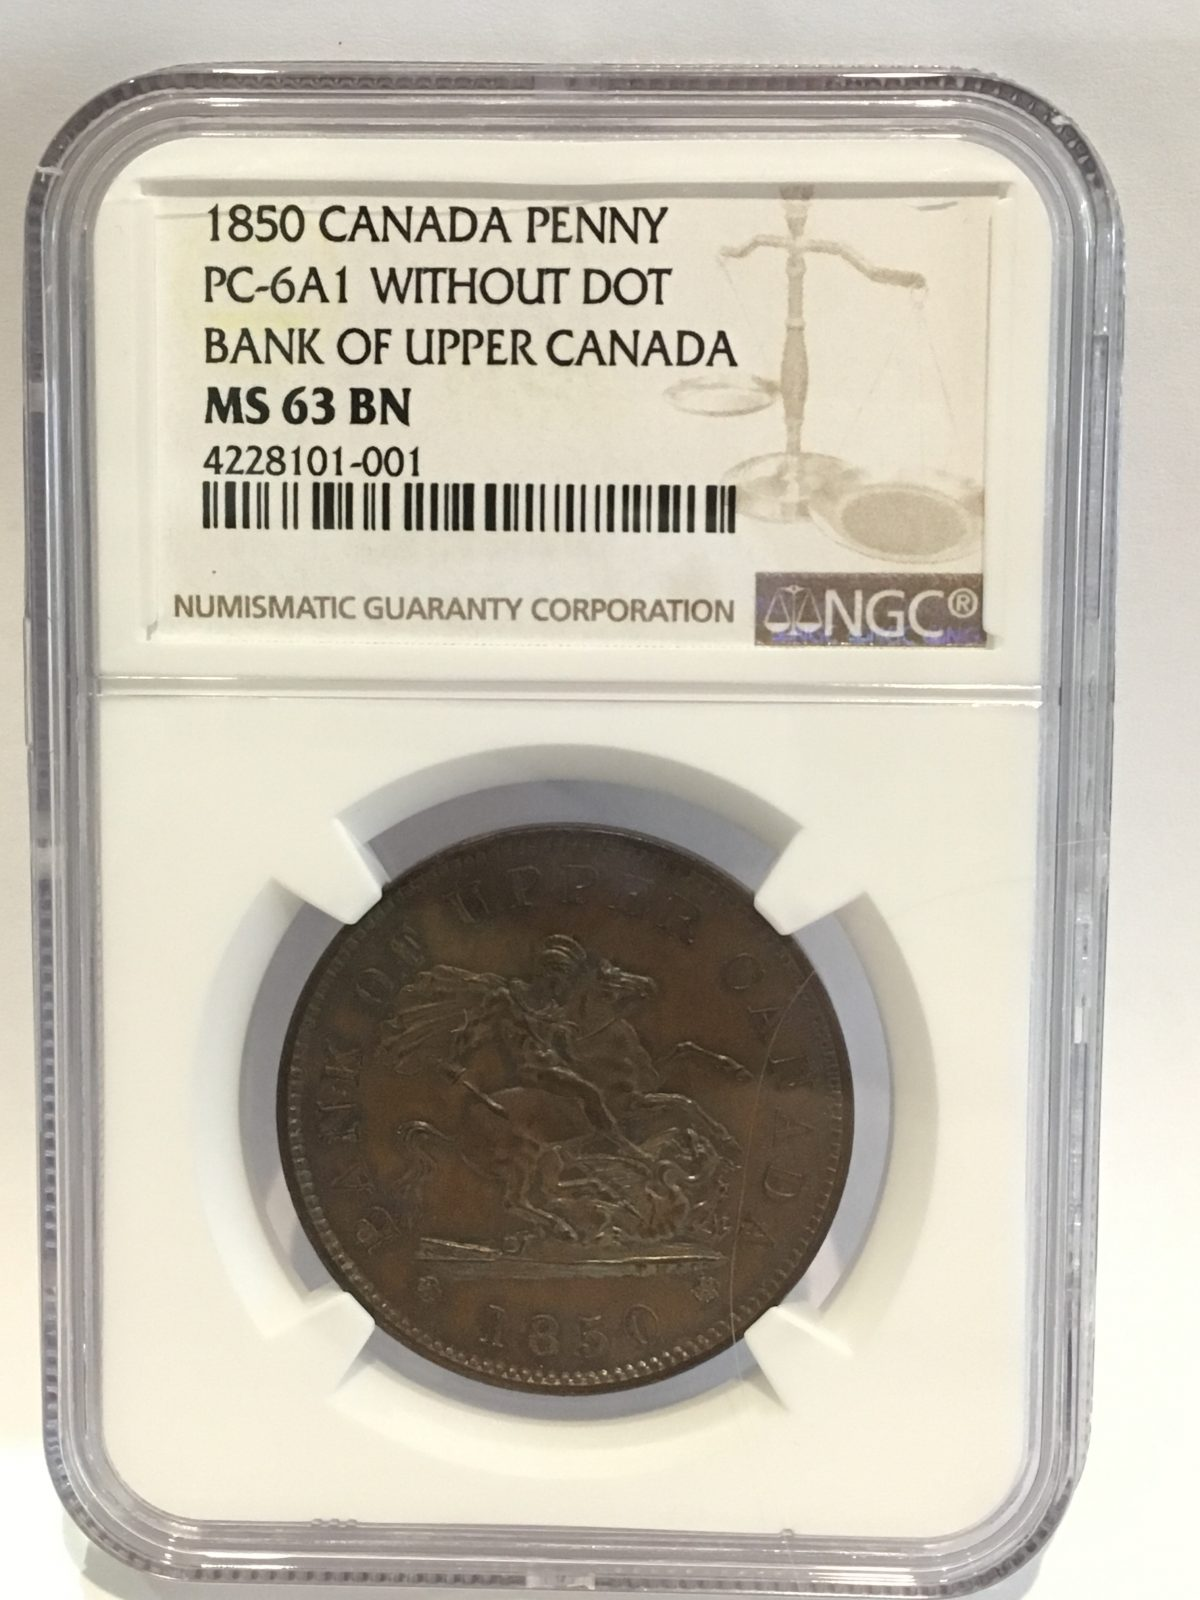 1850 Canada Penny Bank of Upper Canada NGC Certified MS 63 BN